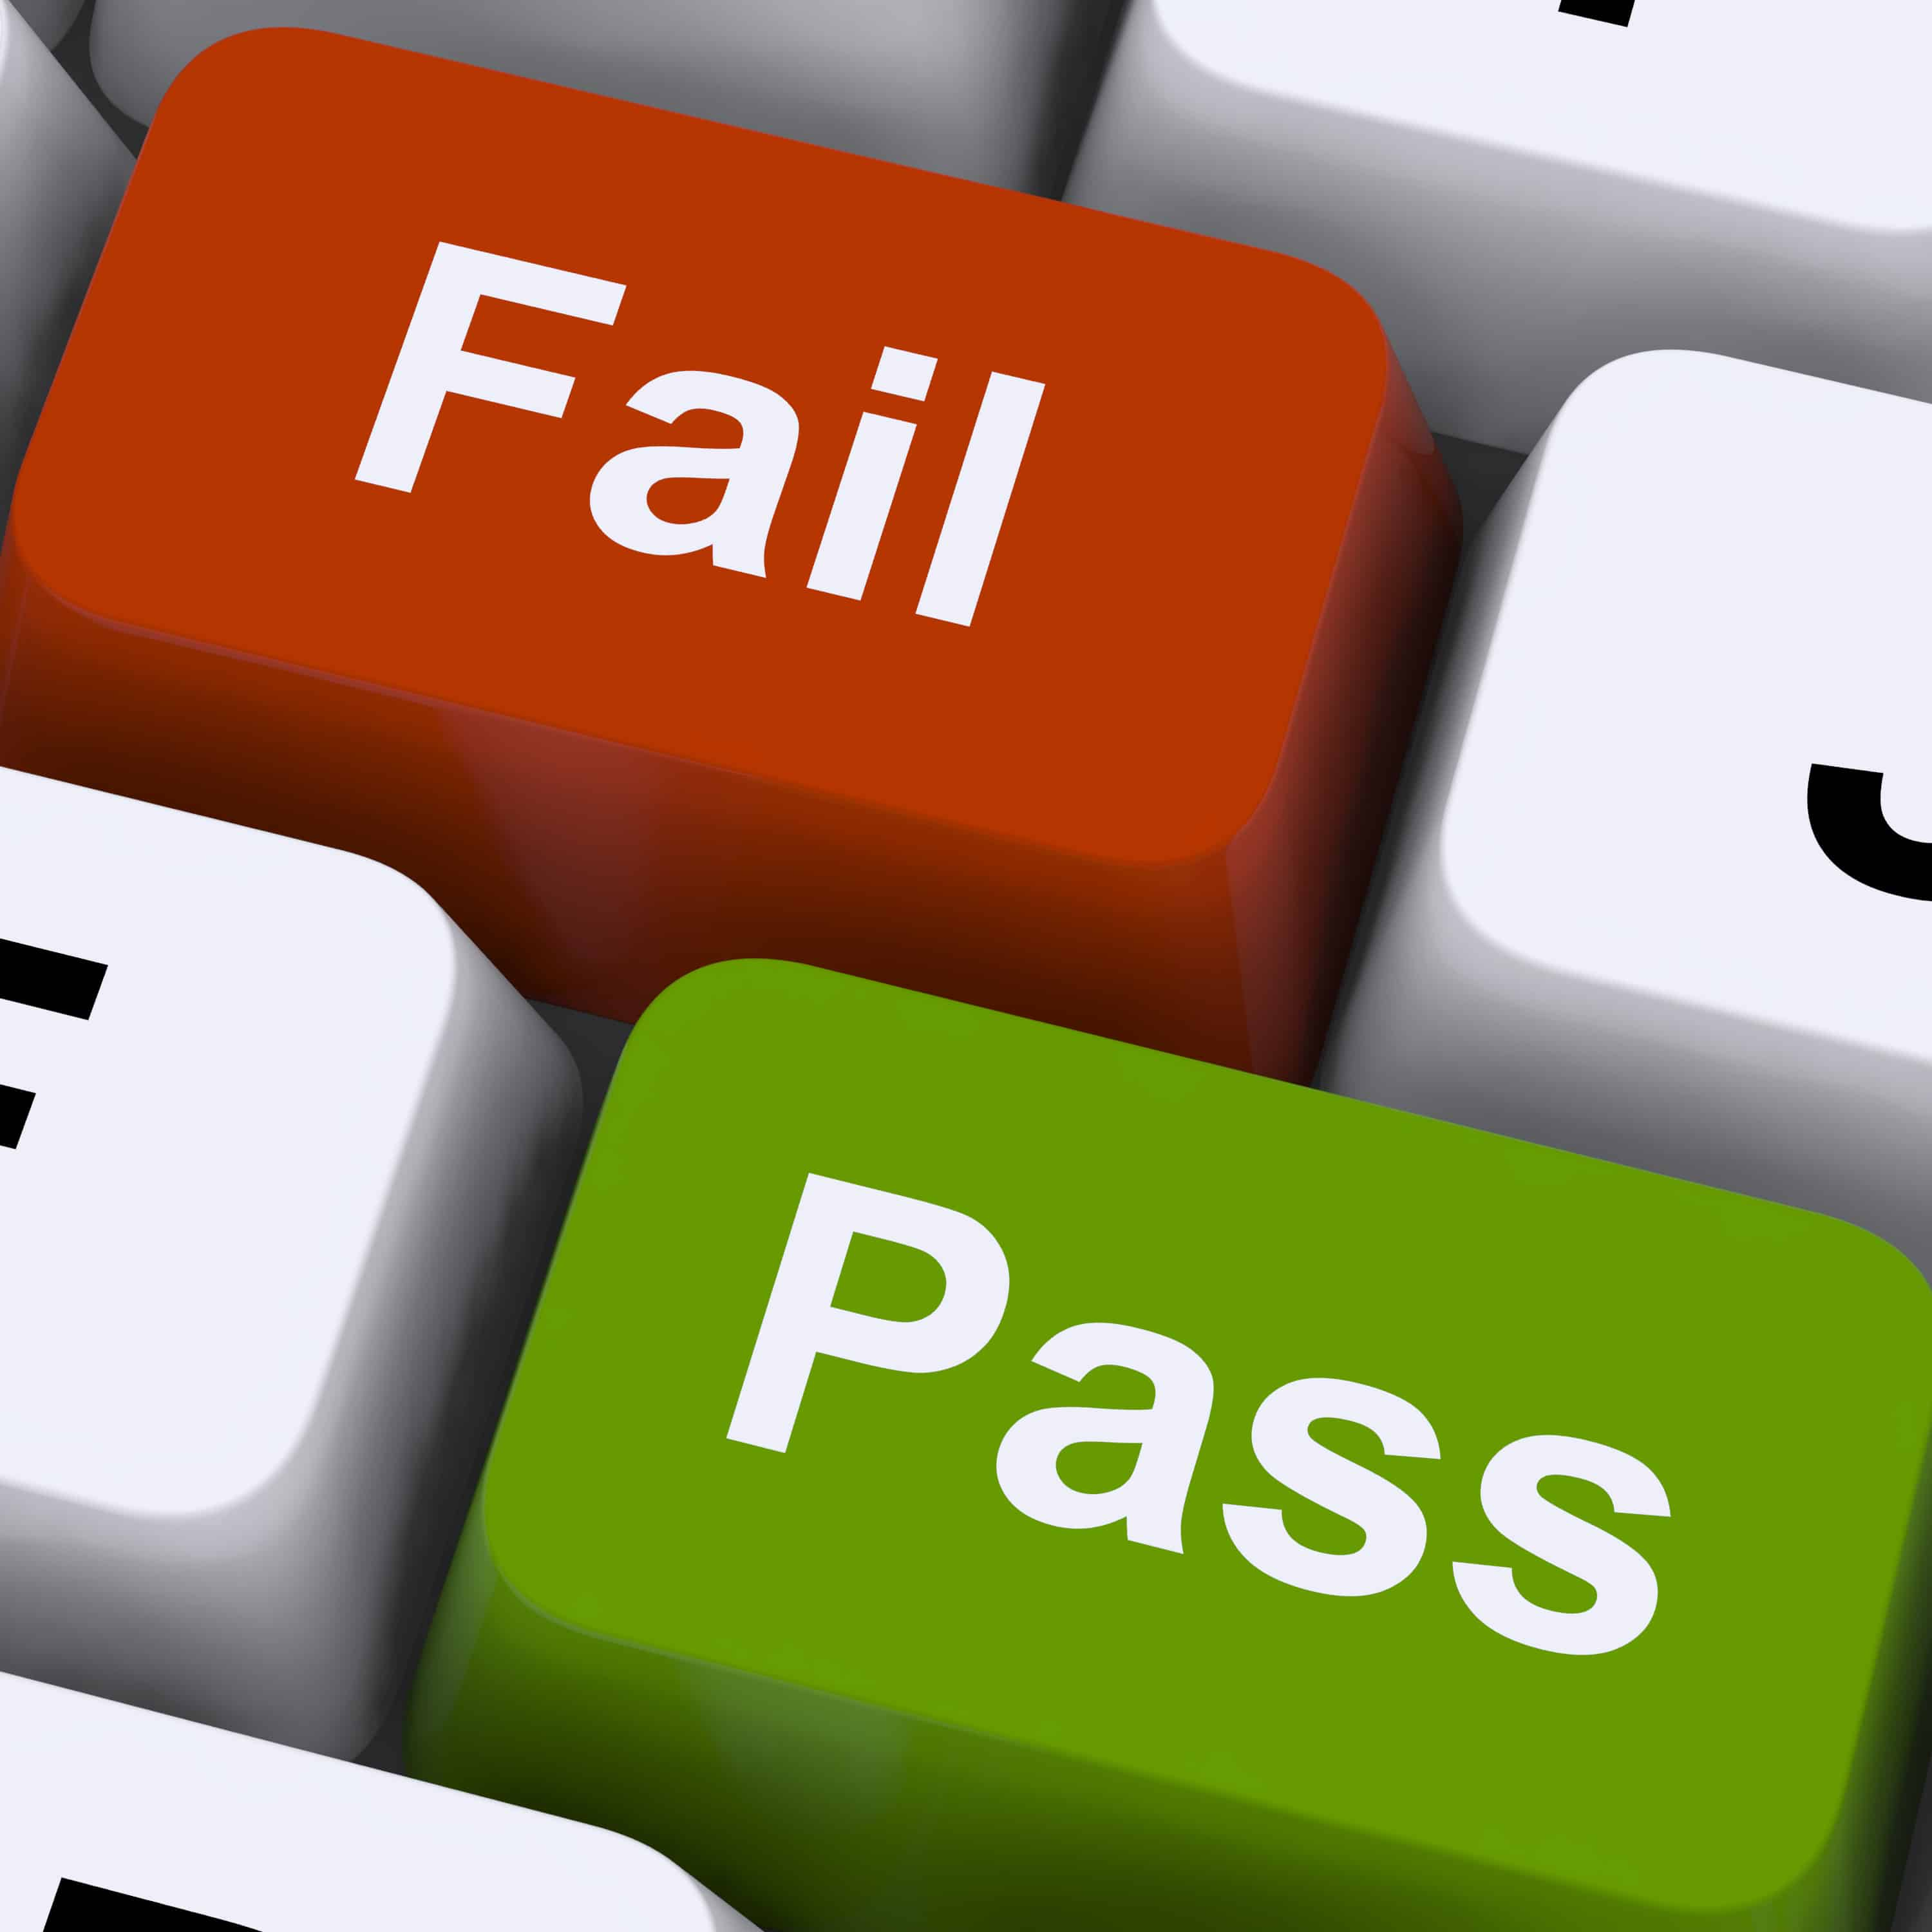 Quizzes - Pass Or Fail Keys To Show Exam Or Test Result